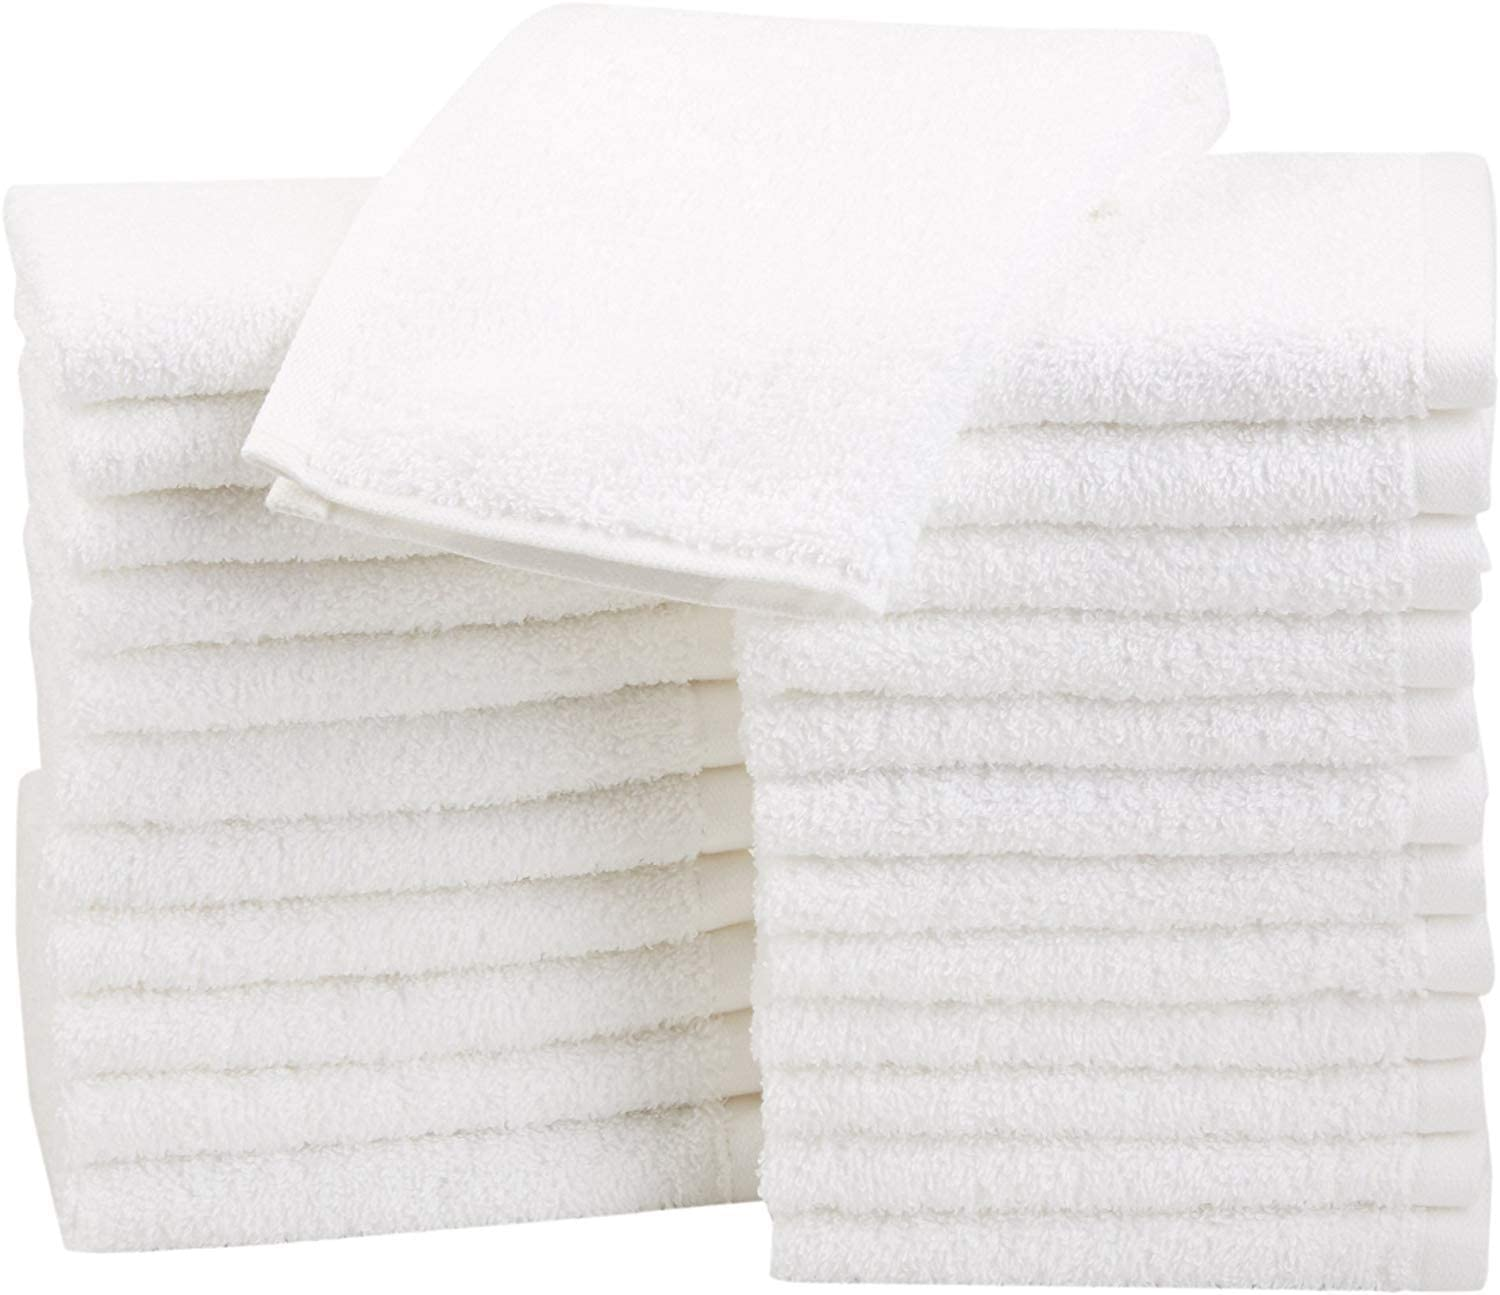 Basics Fast Drying, Extra Absorbent, Terry Cotton Washcloths, White - Pack of 24: Home & Kitchen